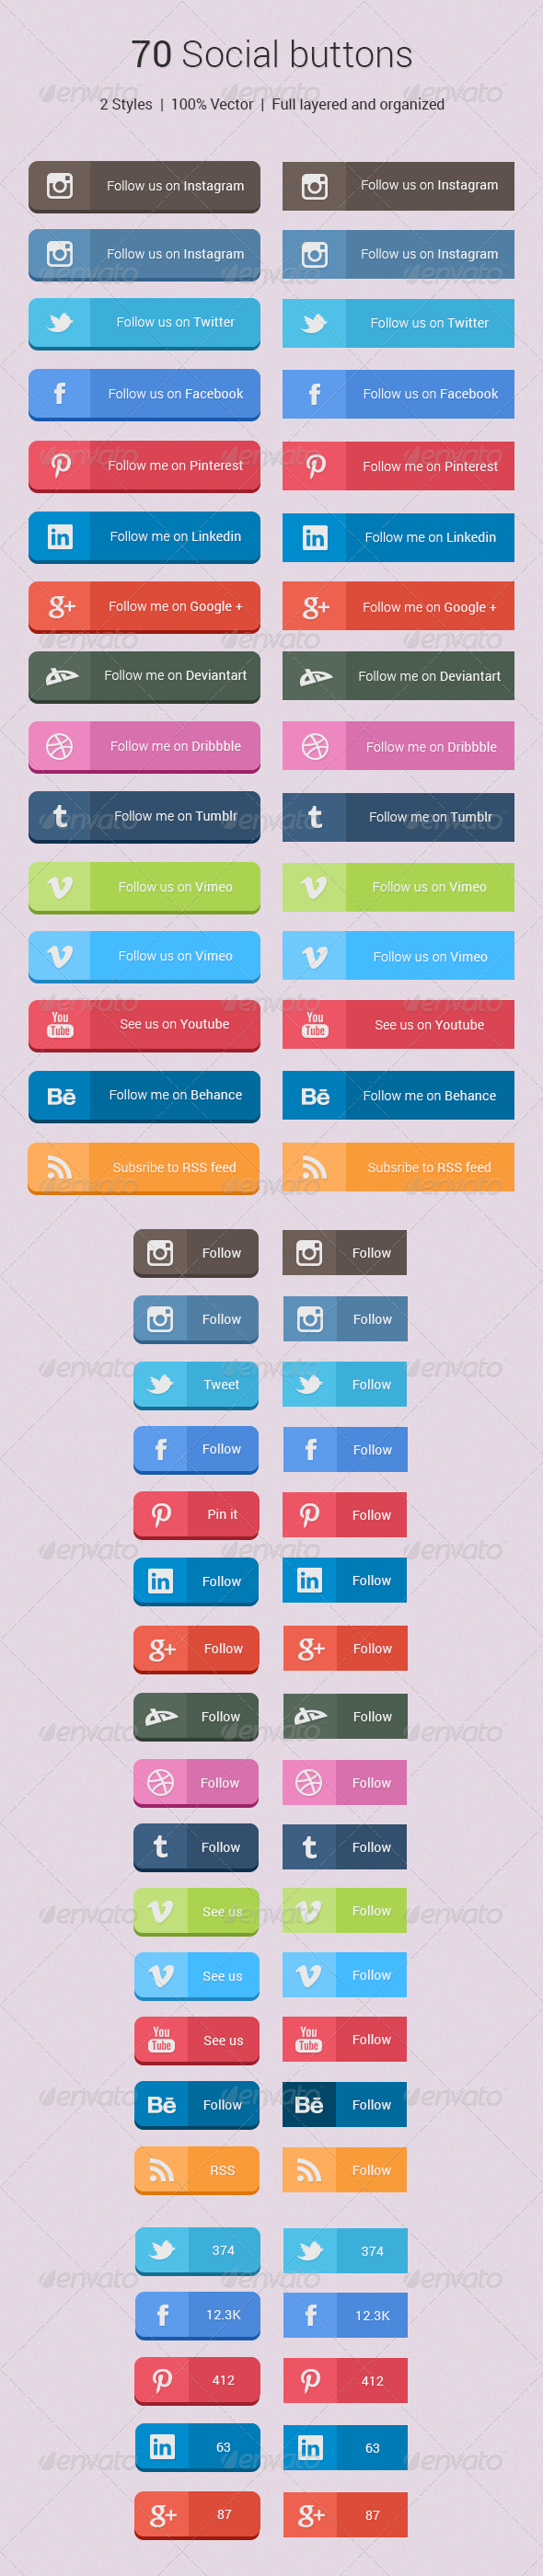 GraphicRiver 70 Social Buttons 5507078